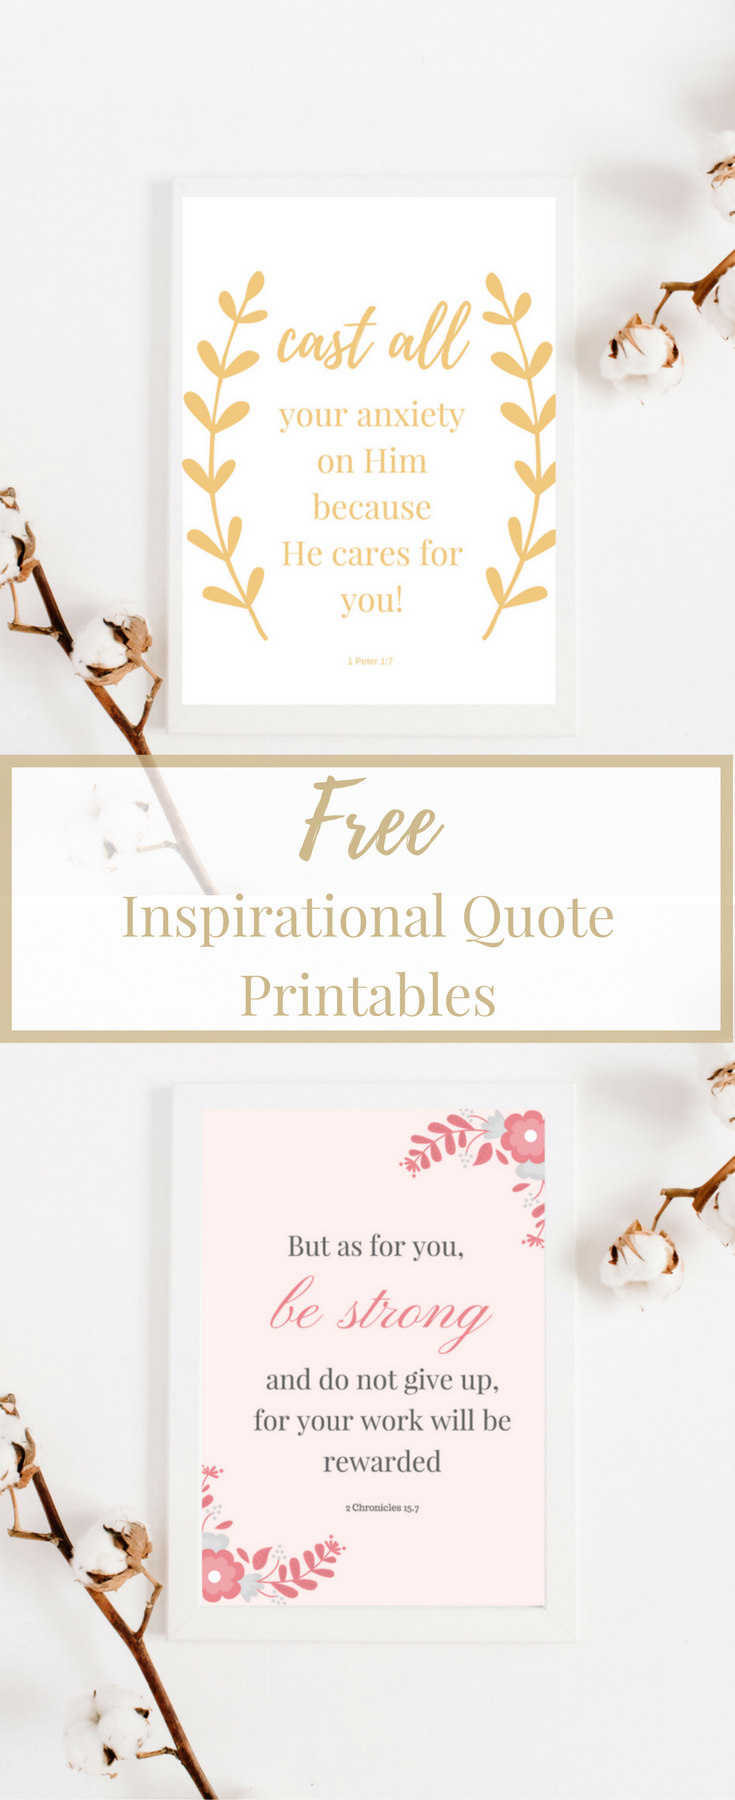 Free Inspirational Quote Printables perfect for your home